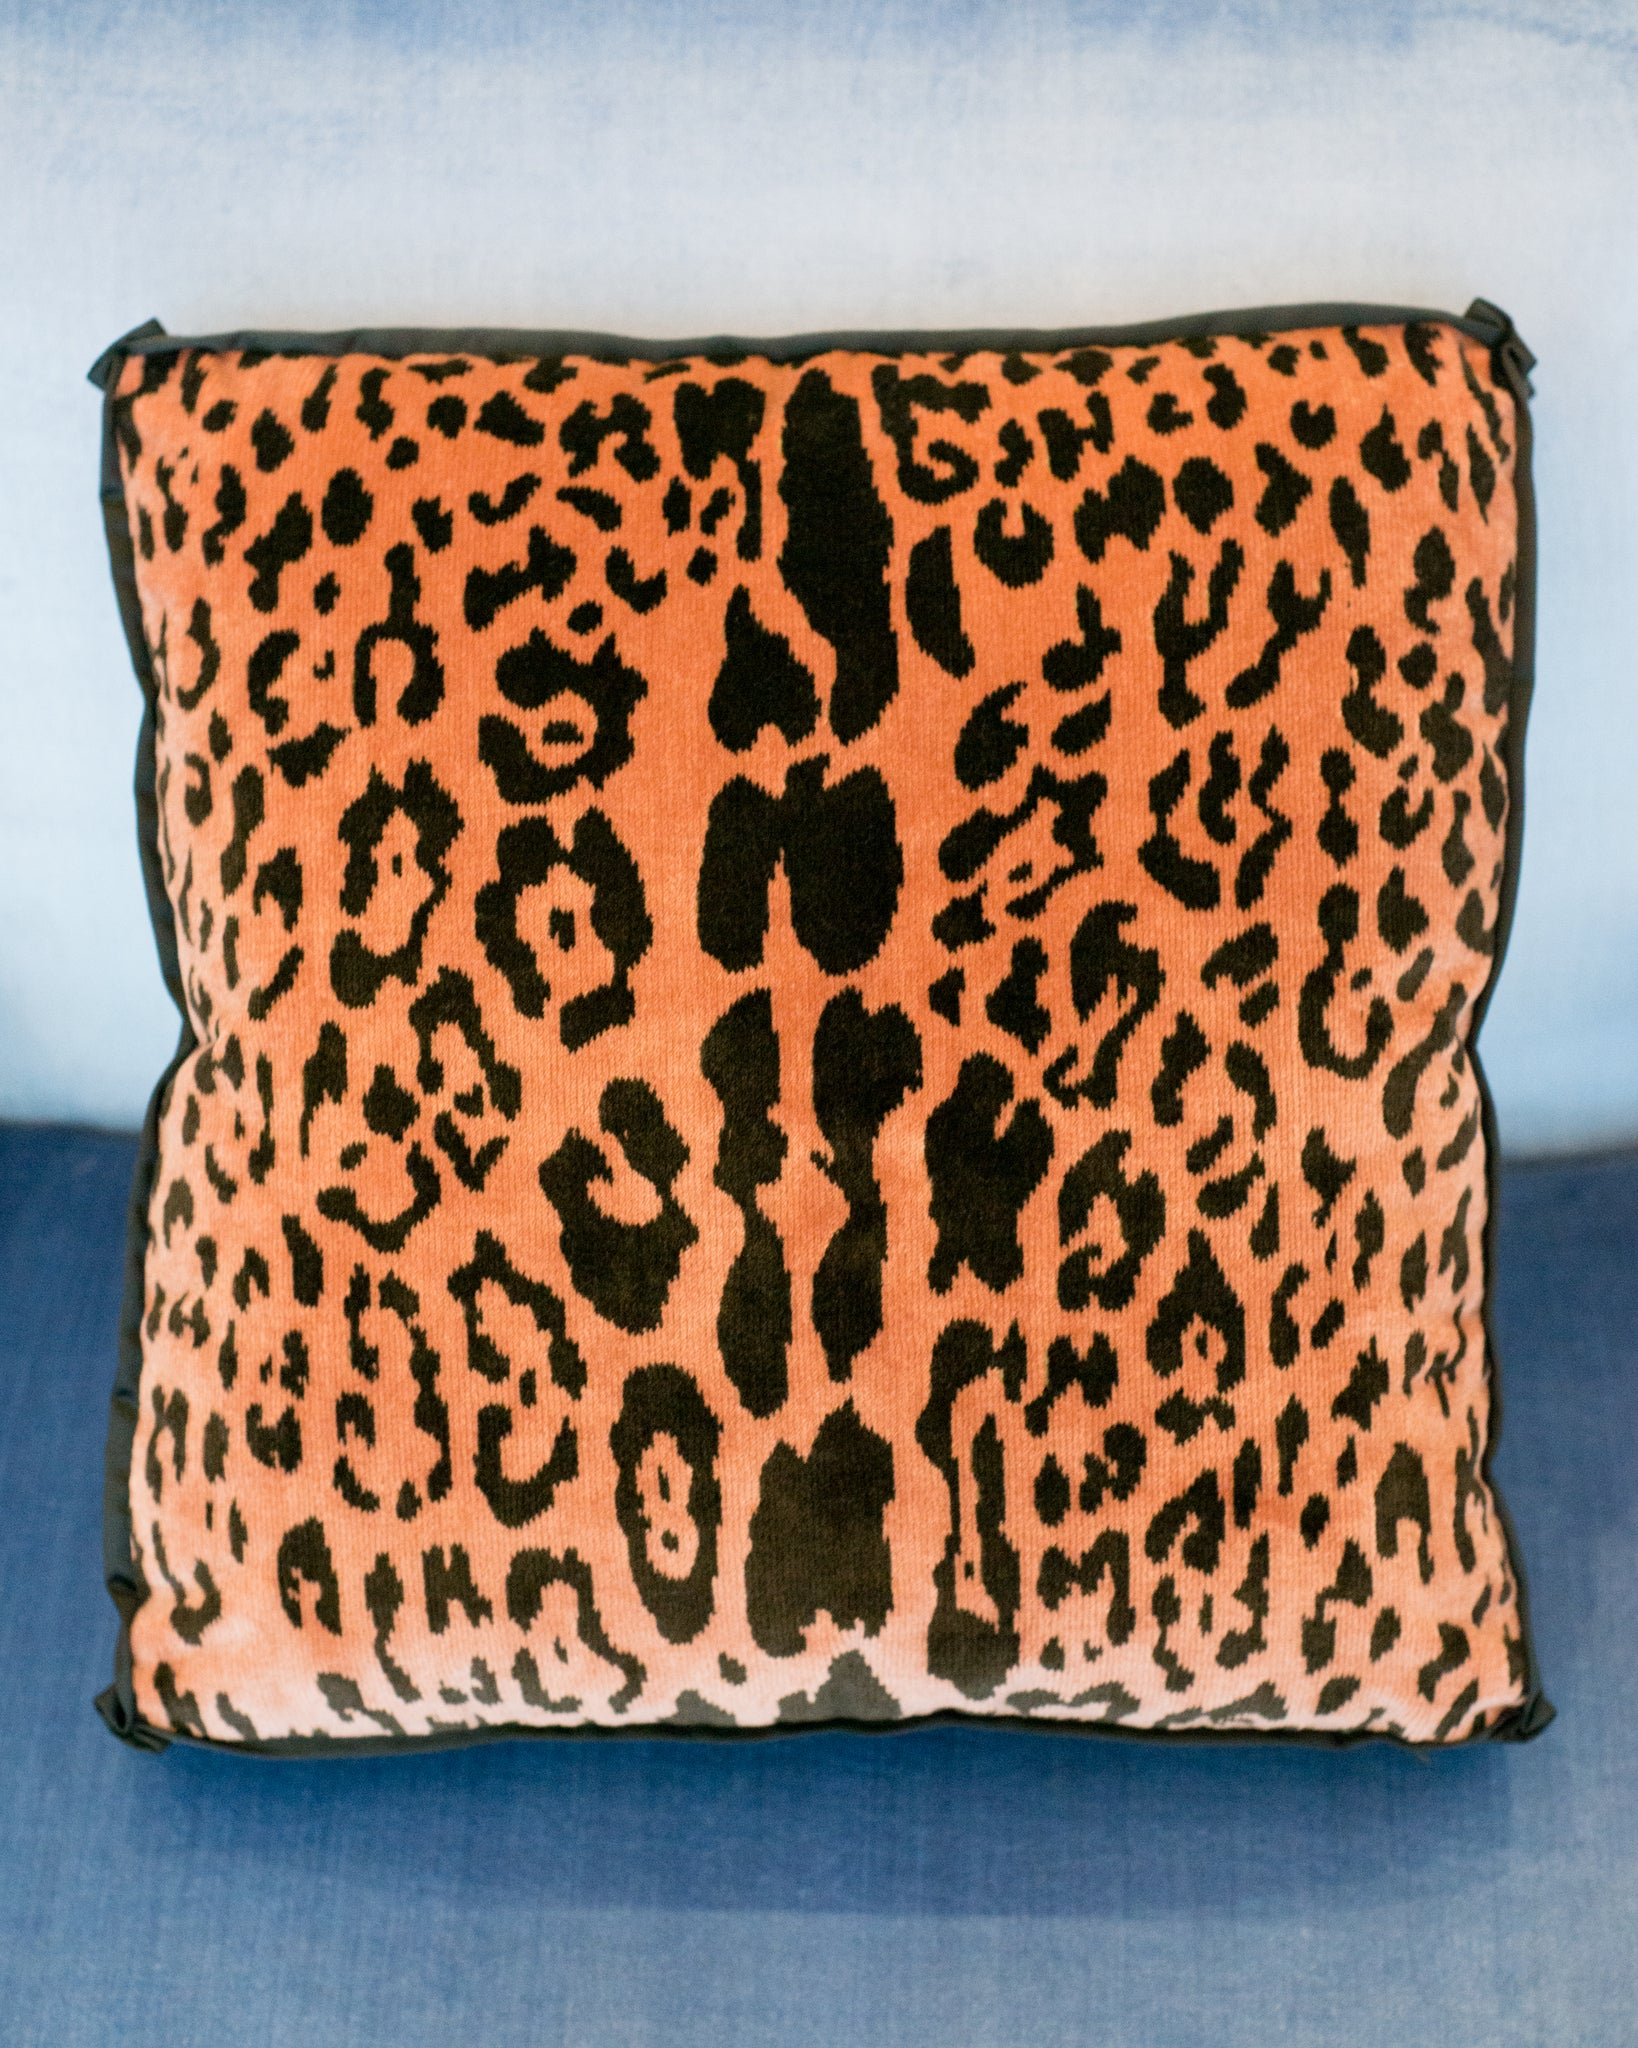 STUDIO MAISON NURITA BOX PILLOW IN BEVILACQUA CORAL LEOPARD VELVET WITH SATIN TRIM